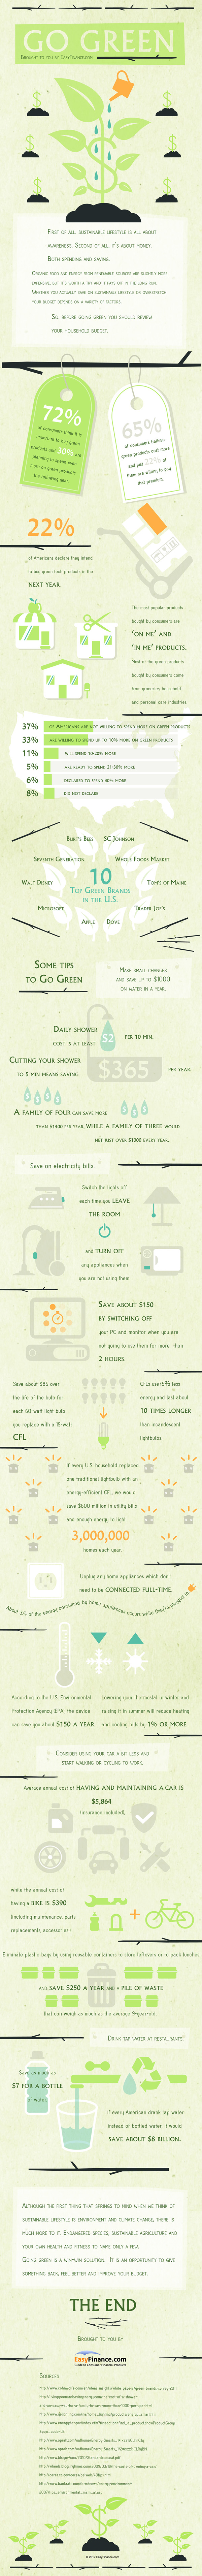 Go-Green-infographic